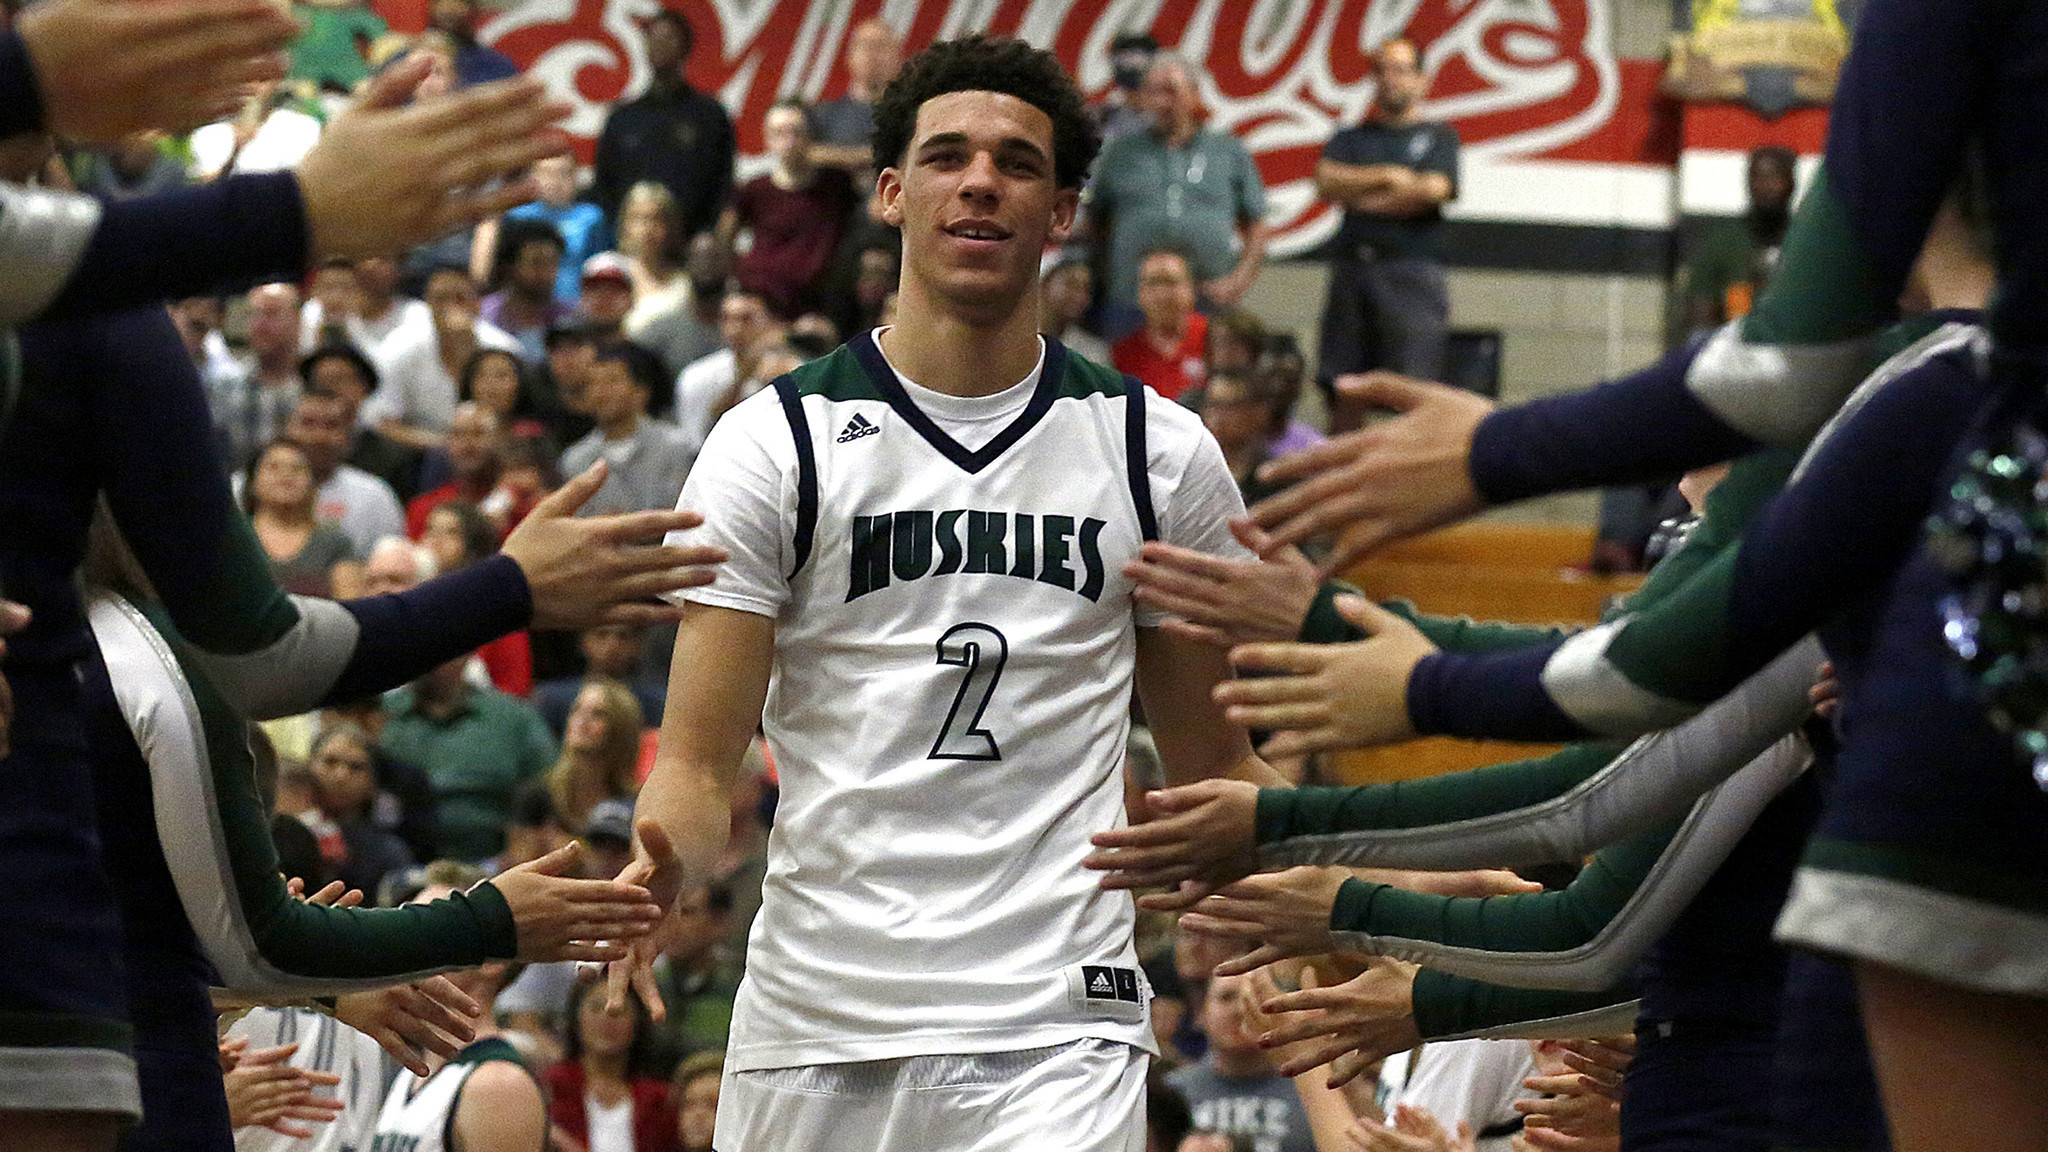 Lonzo Ball Humble >> Chino Hills tops 100 points again in Lonzo Ball's final home game - LA Times